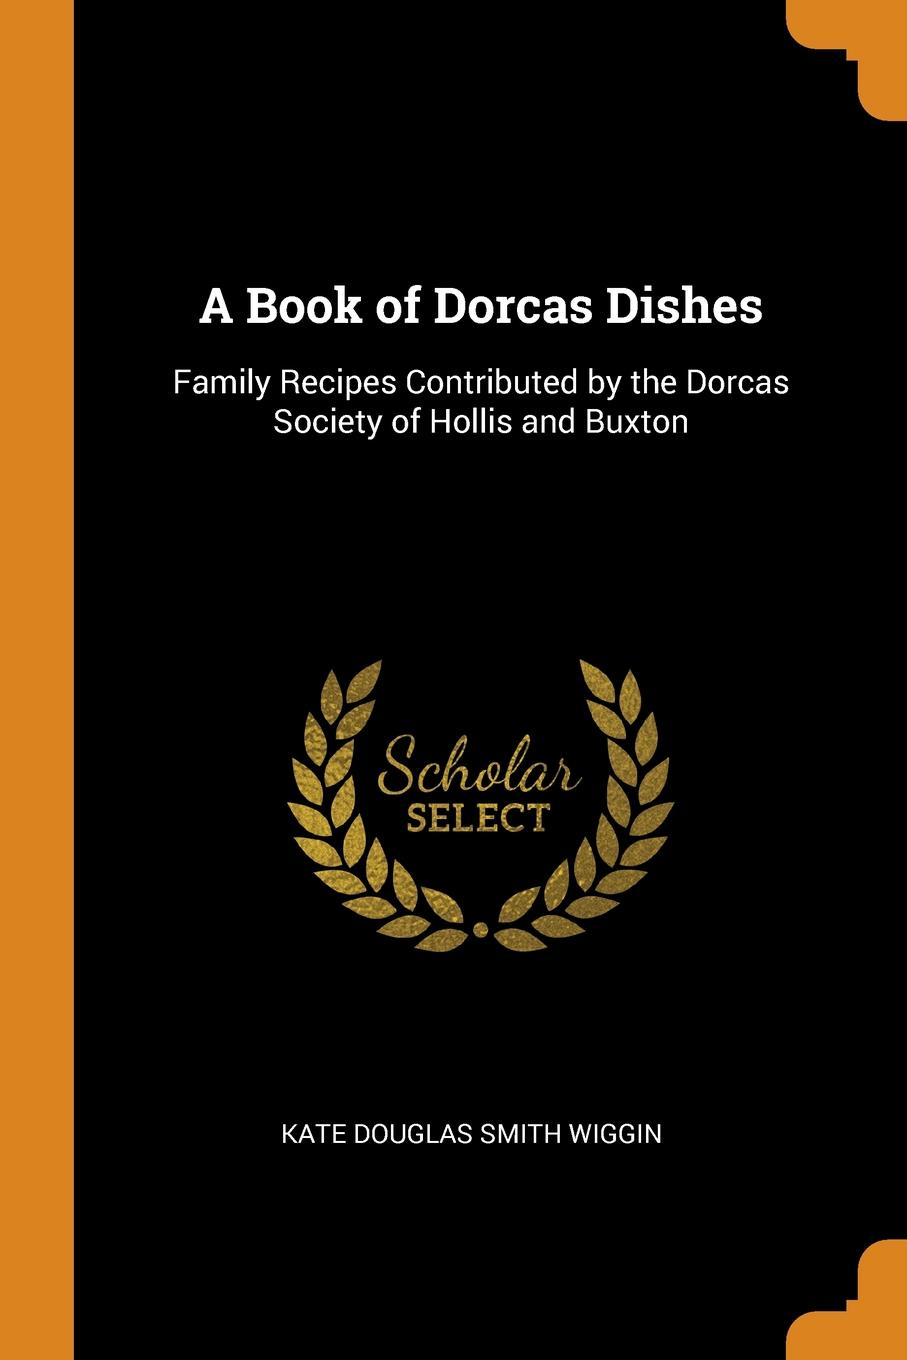 Kate Douglas Smith Wiggin. A Book of Dorcas Dishes. Family Recipes Contributed by the Dorcas Society of Hollis and Buxton